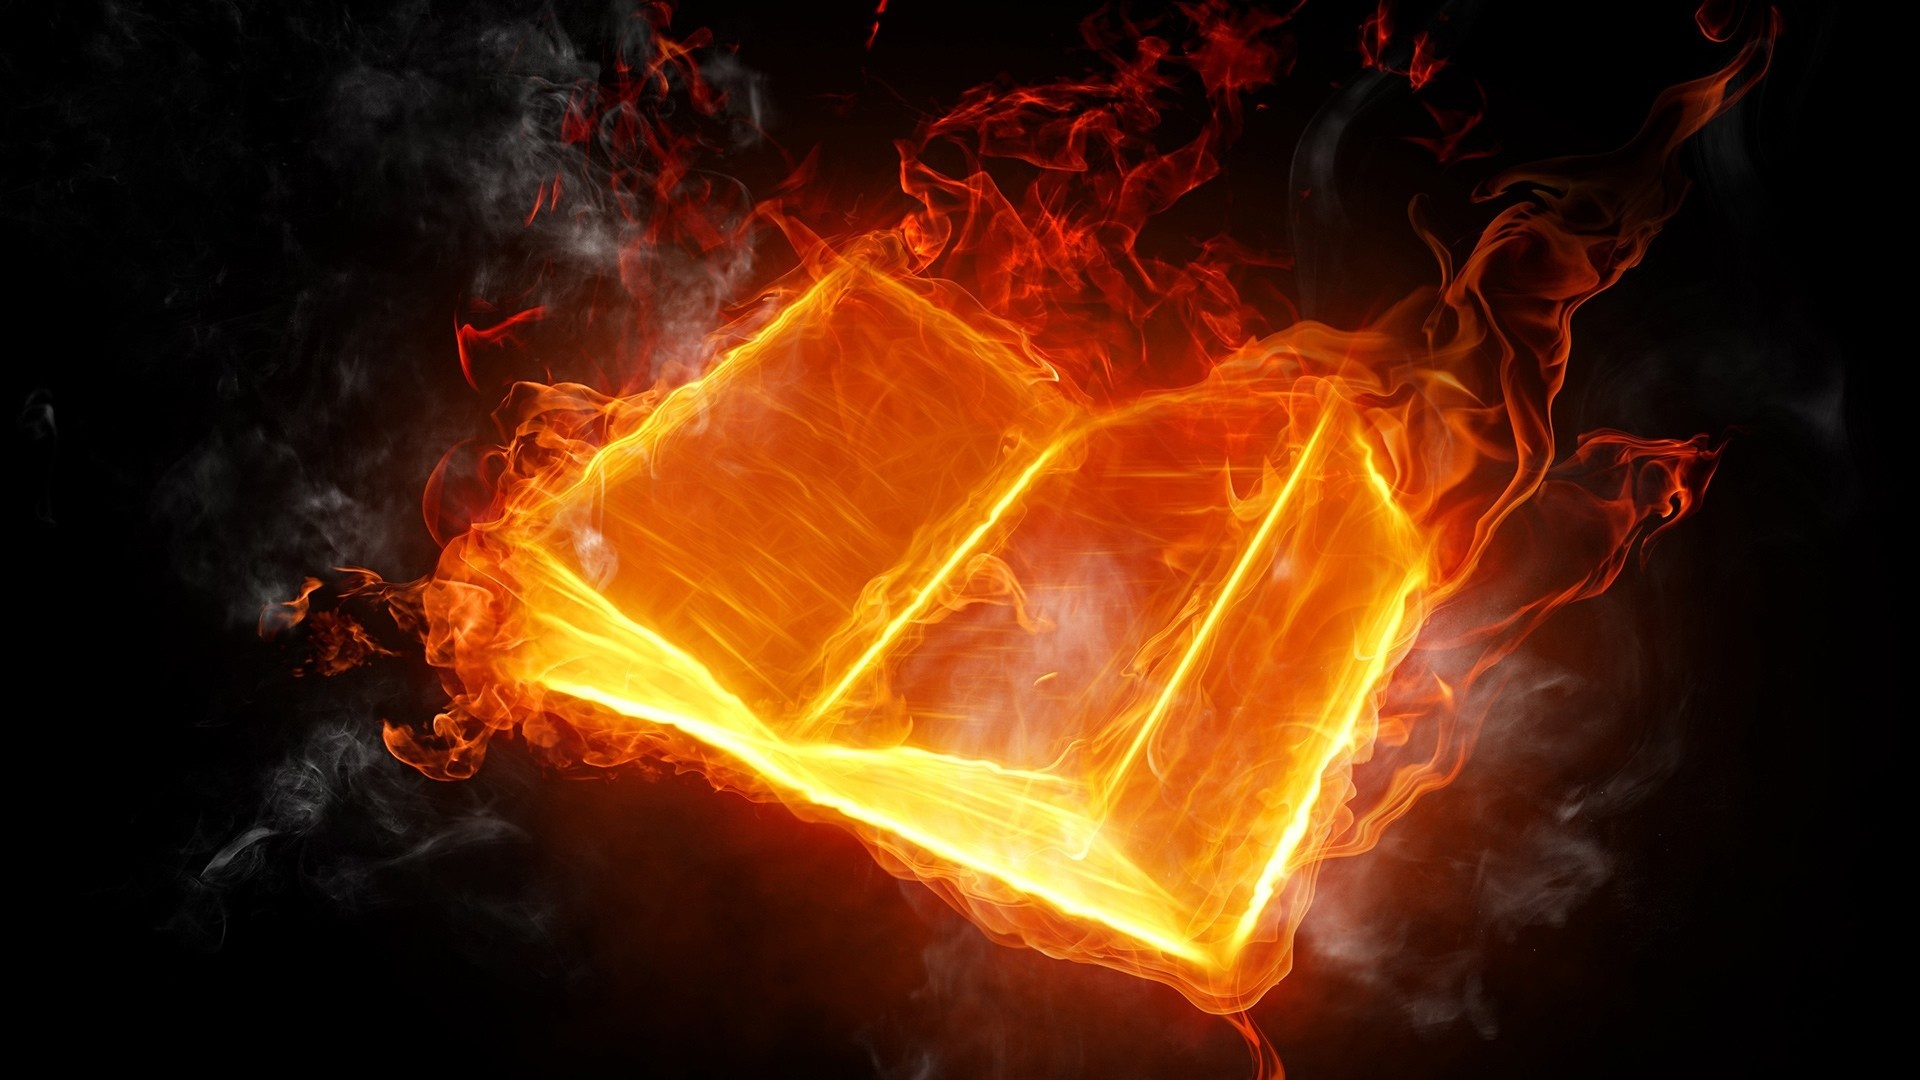 Abstract-design-burning-fire-book_1920x1080.jpg